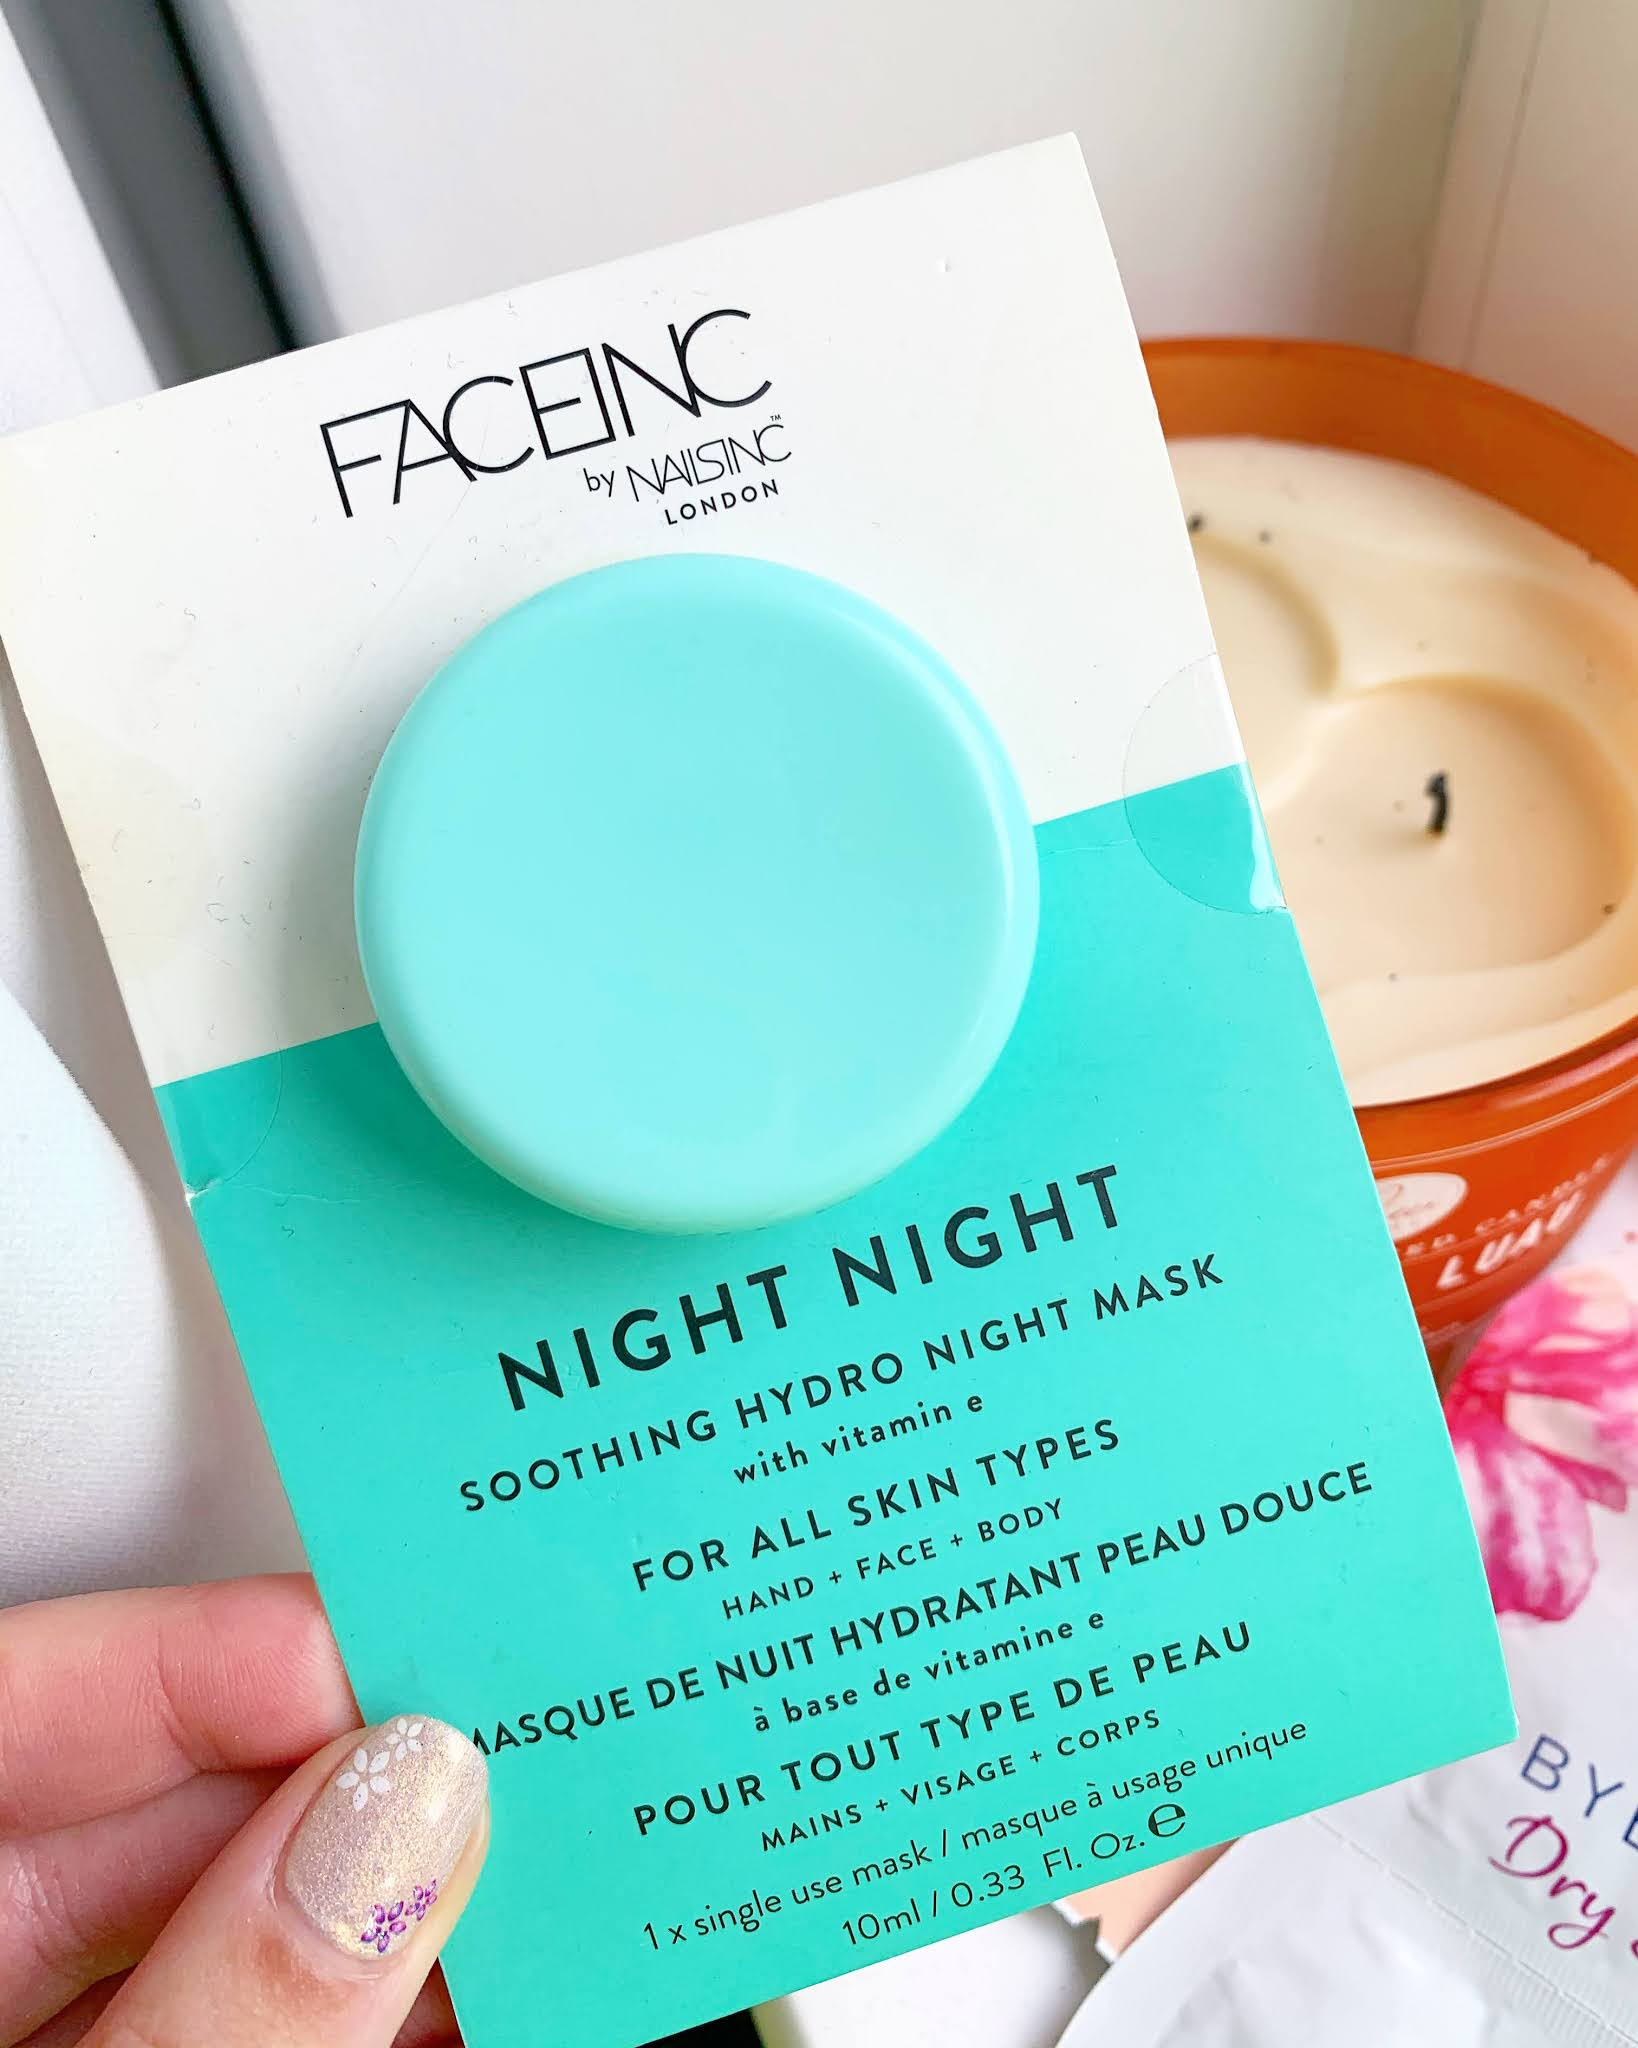 Nails Inc Night Night Soothing Hydro Night Mask held in a hand